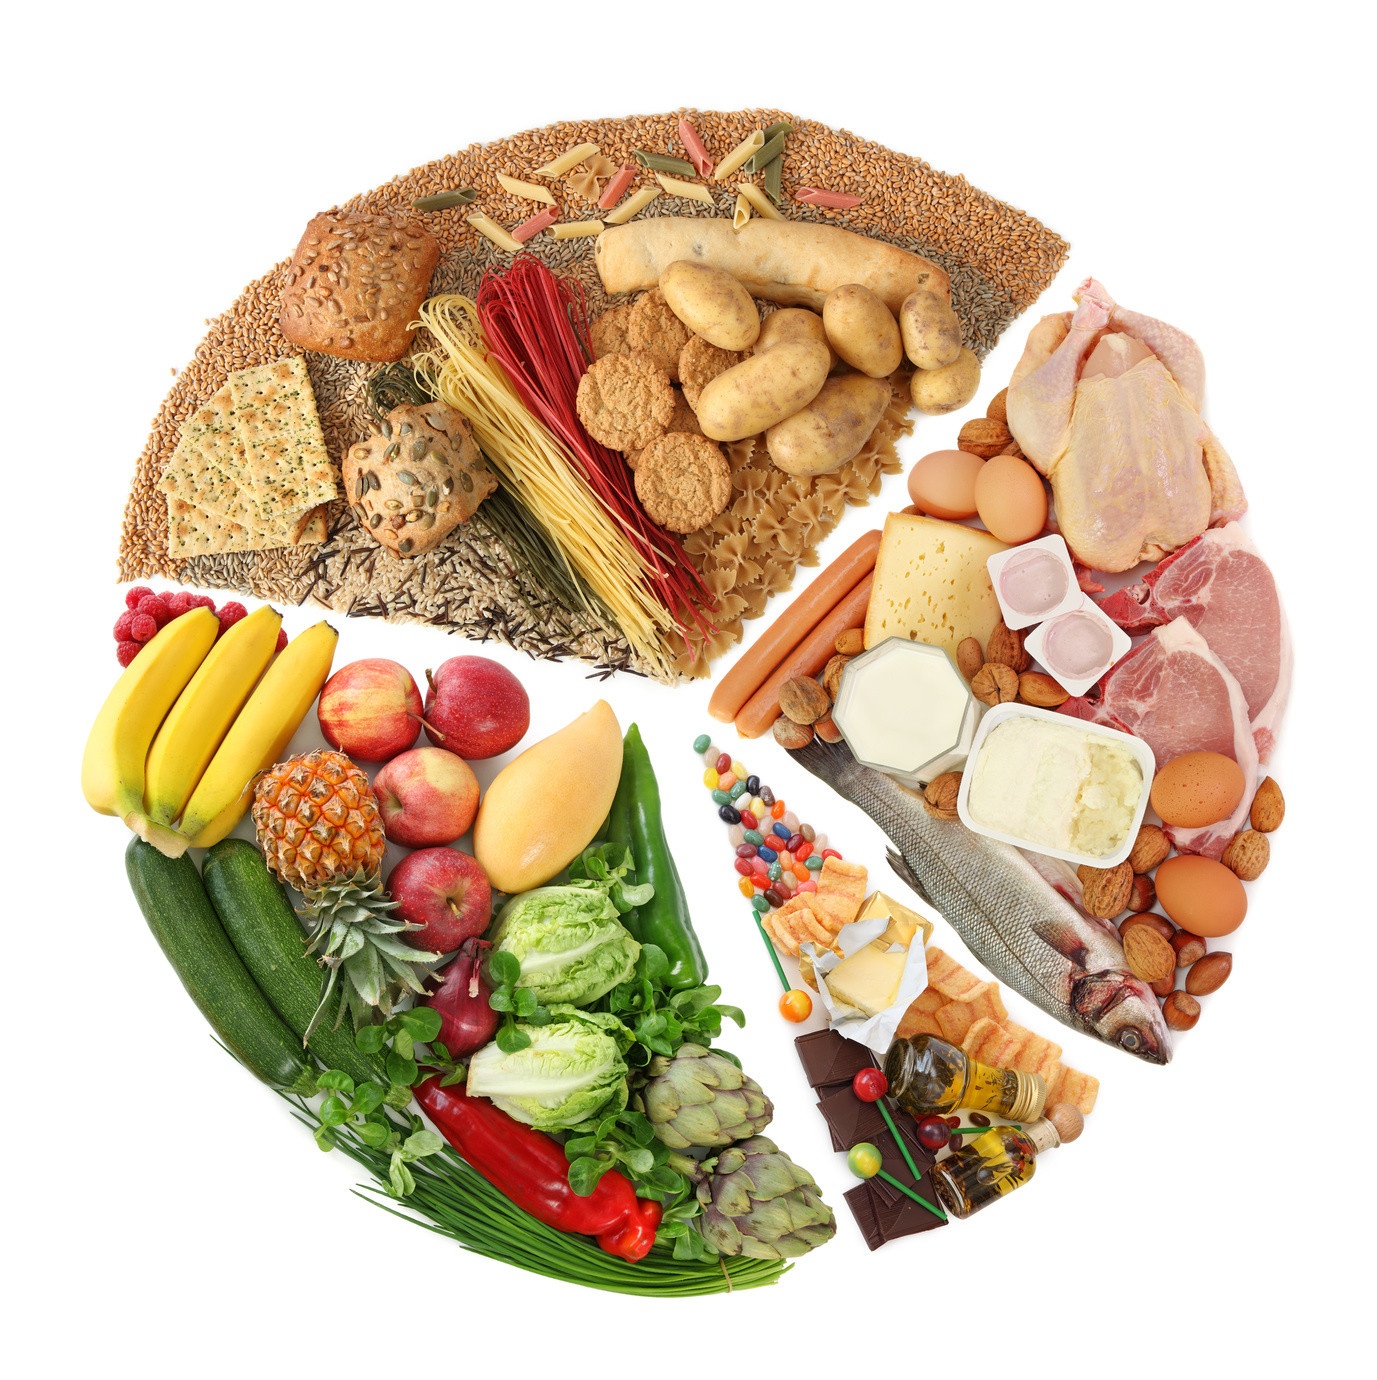 Healthy Snacks While Dieting  Eat These Foods and Never Diet Again eBlogfa